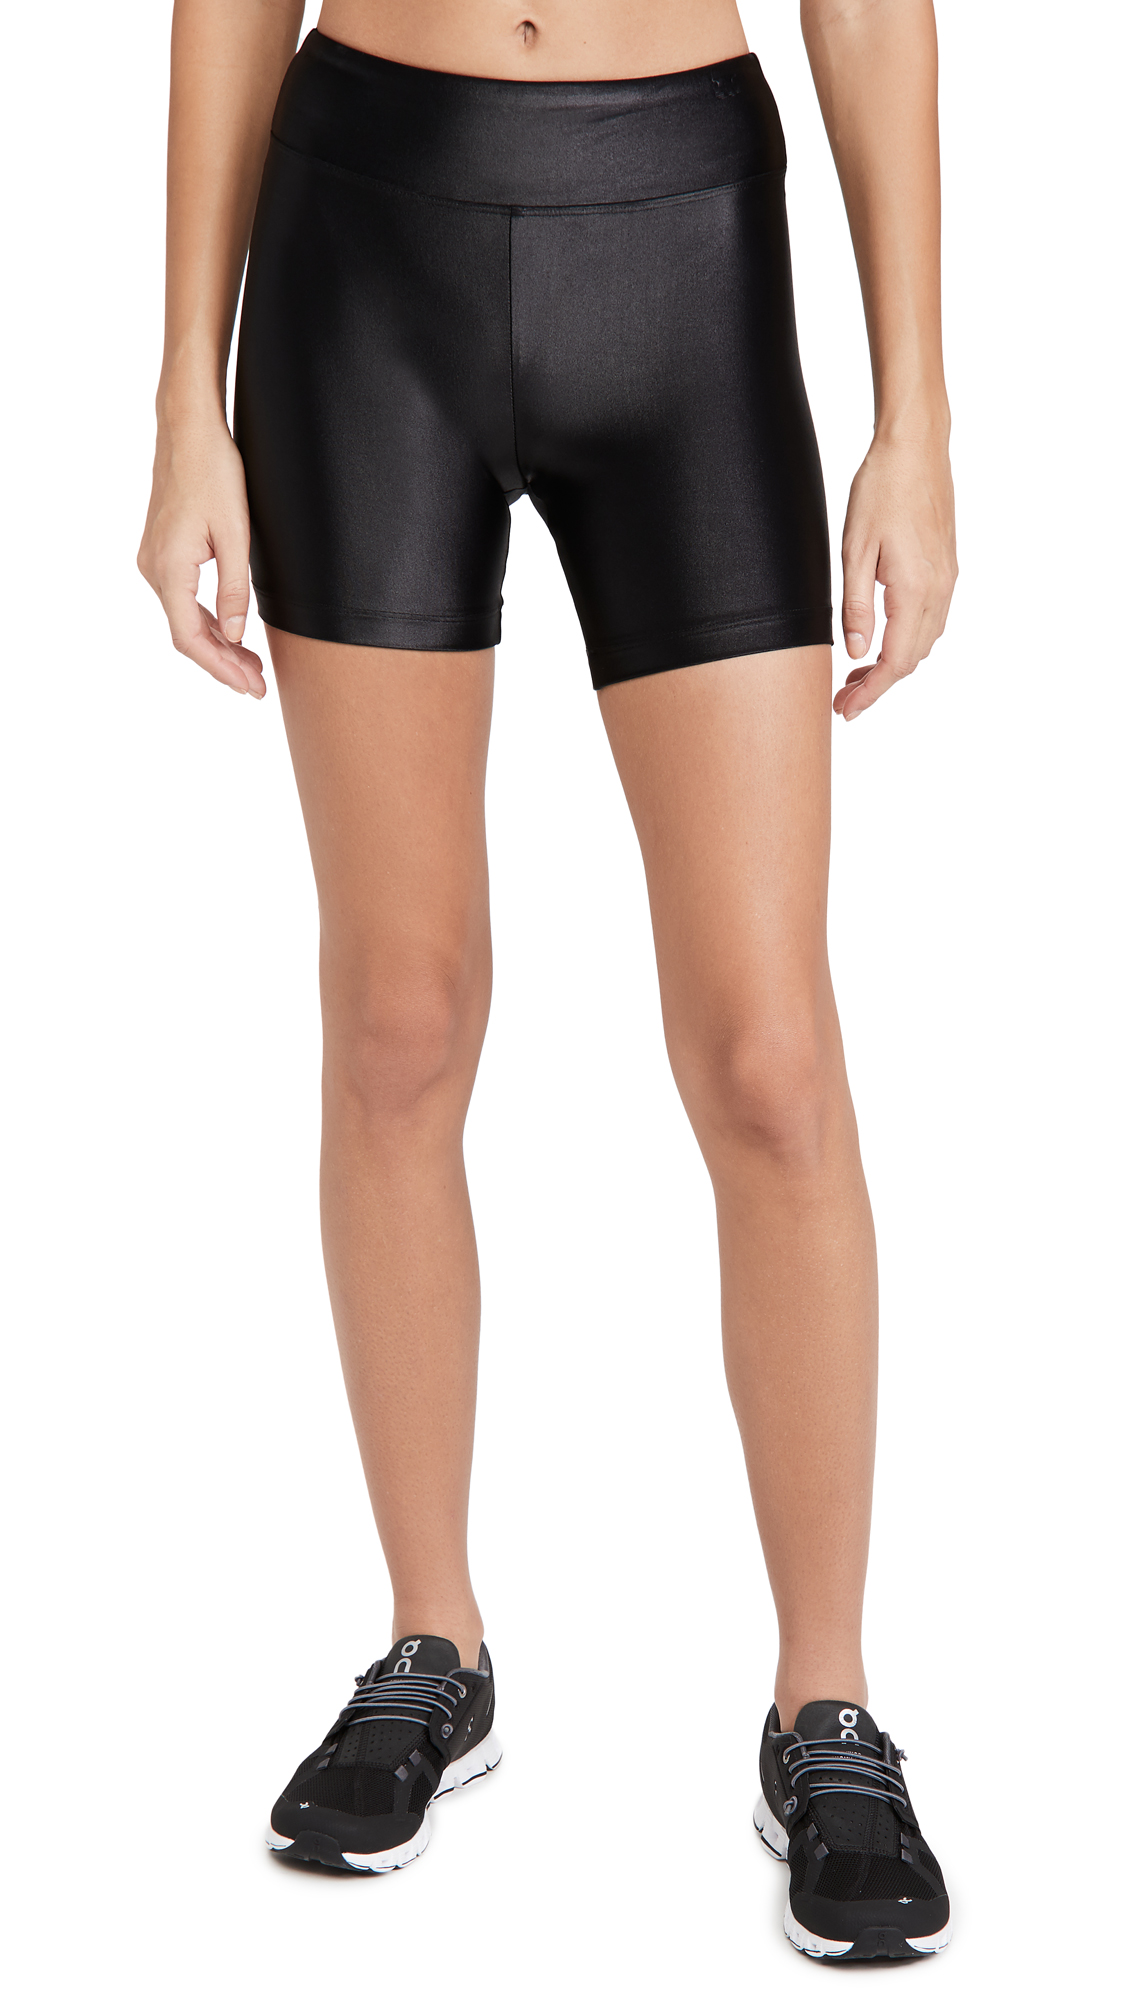 KORAL ACTIVEWEAR Slalom High Rise Shorts